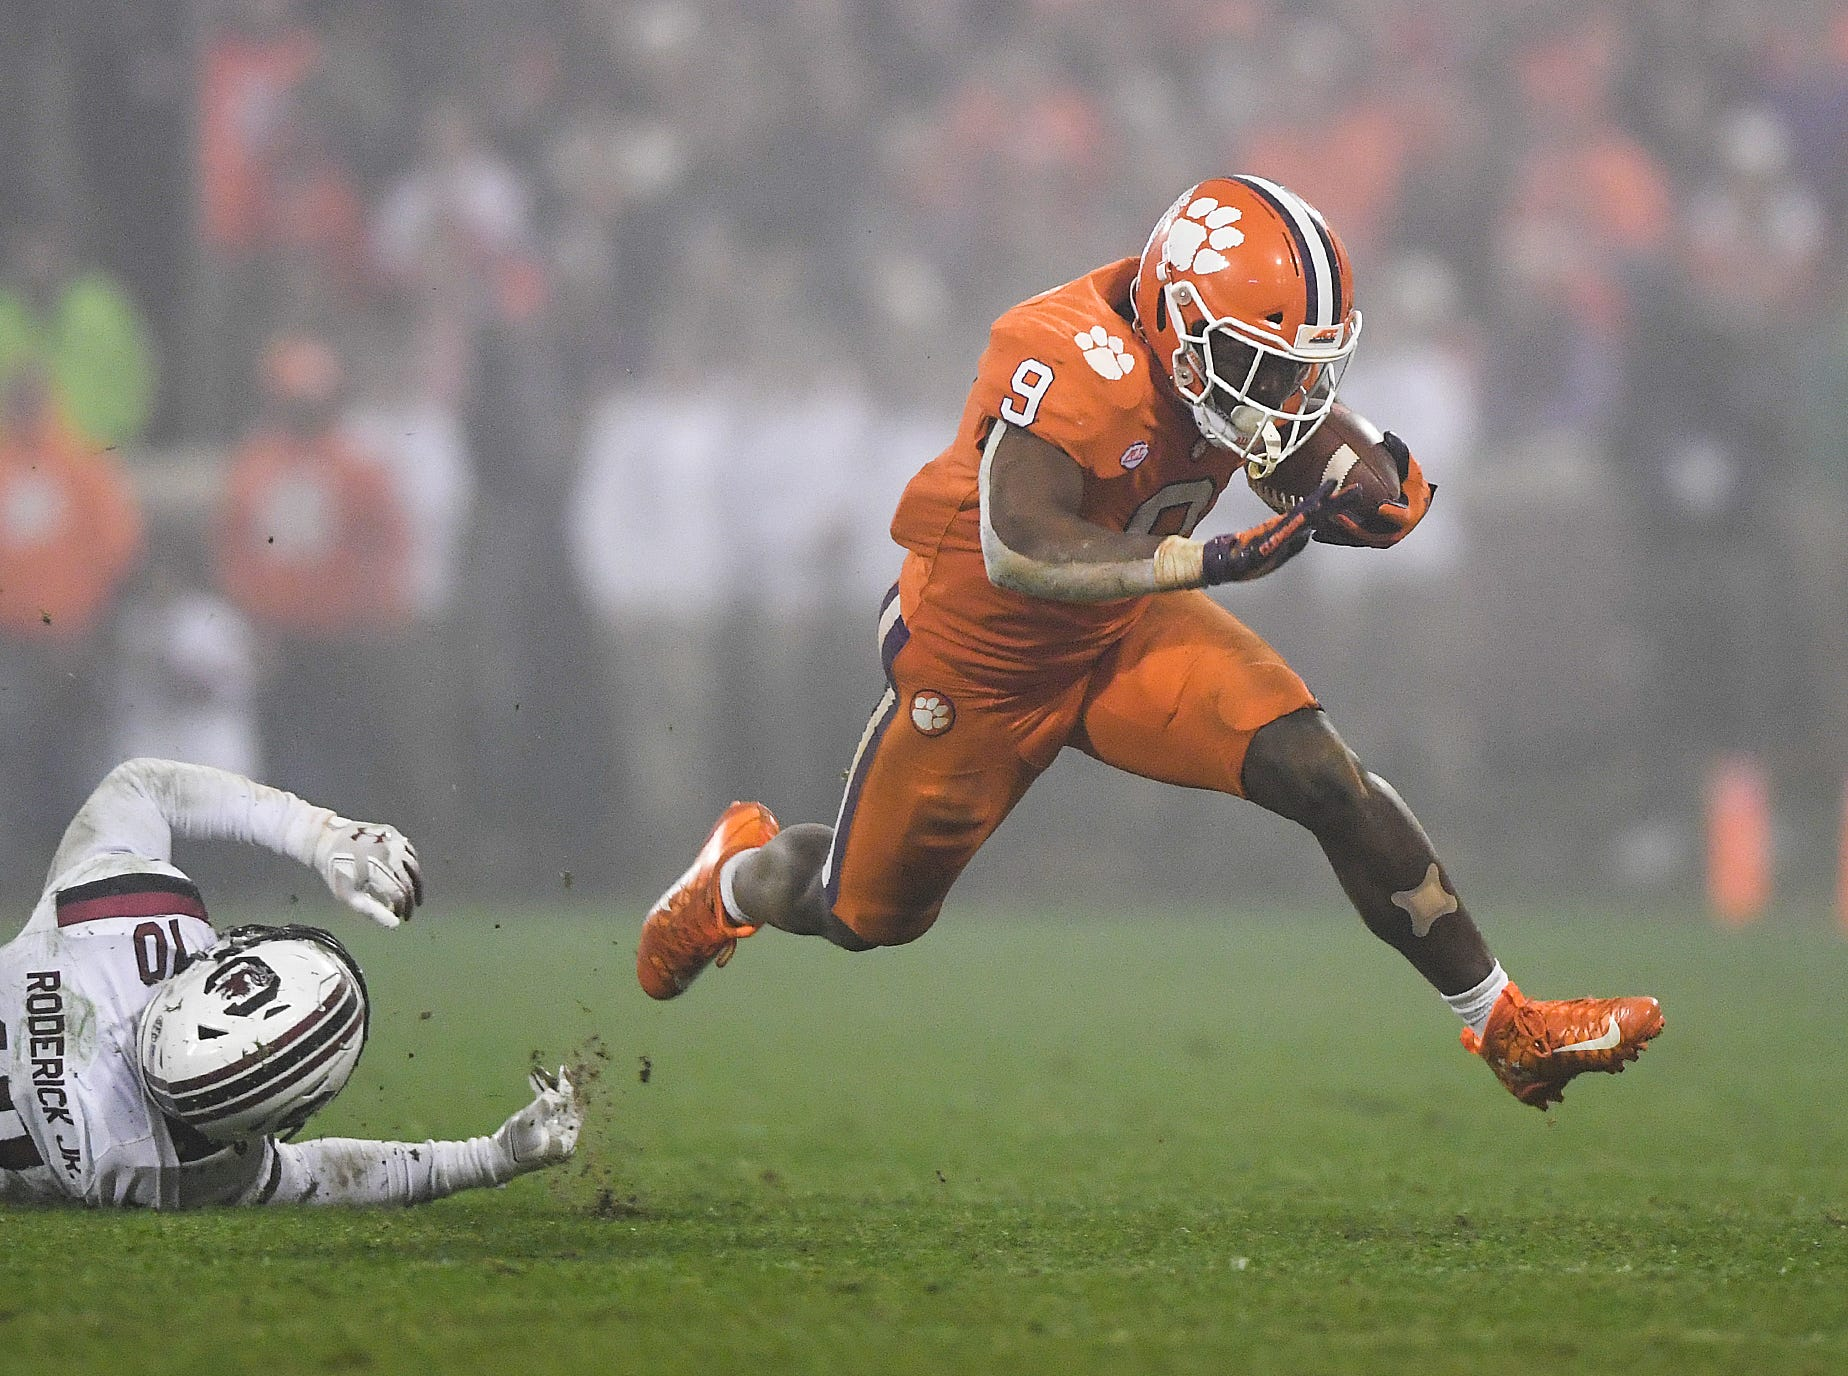 South Carolina safety R.J. Roderick (10) can't stop Clemson running back Travis Etienne (9) during the 4th quarter Saturday, November 24, 2018 at Clemson's Memorial Stadium.